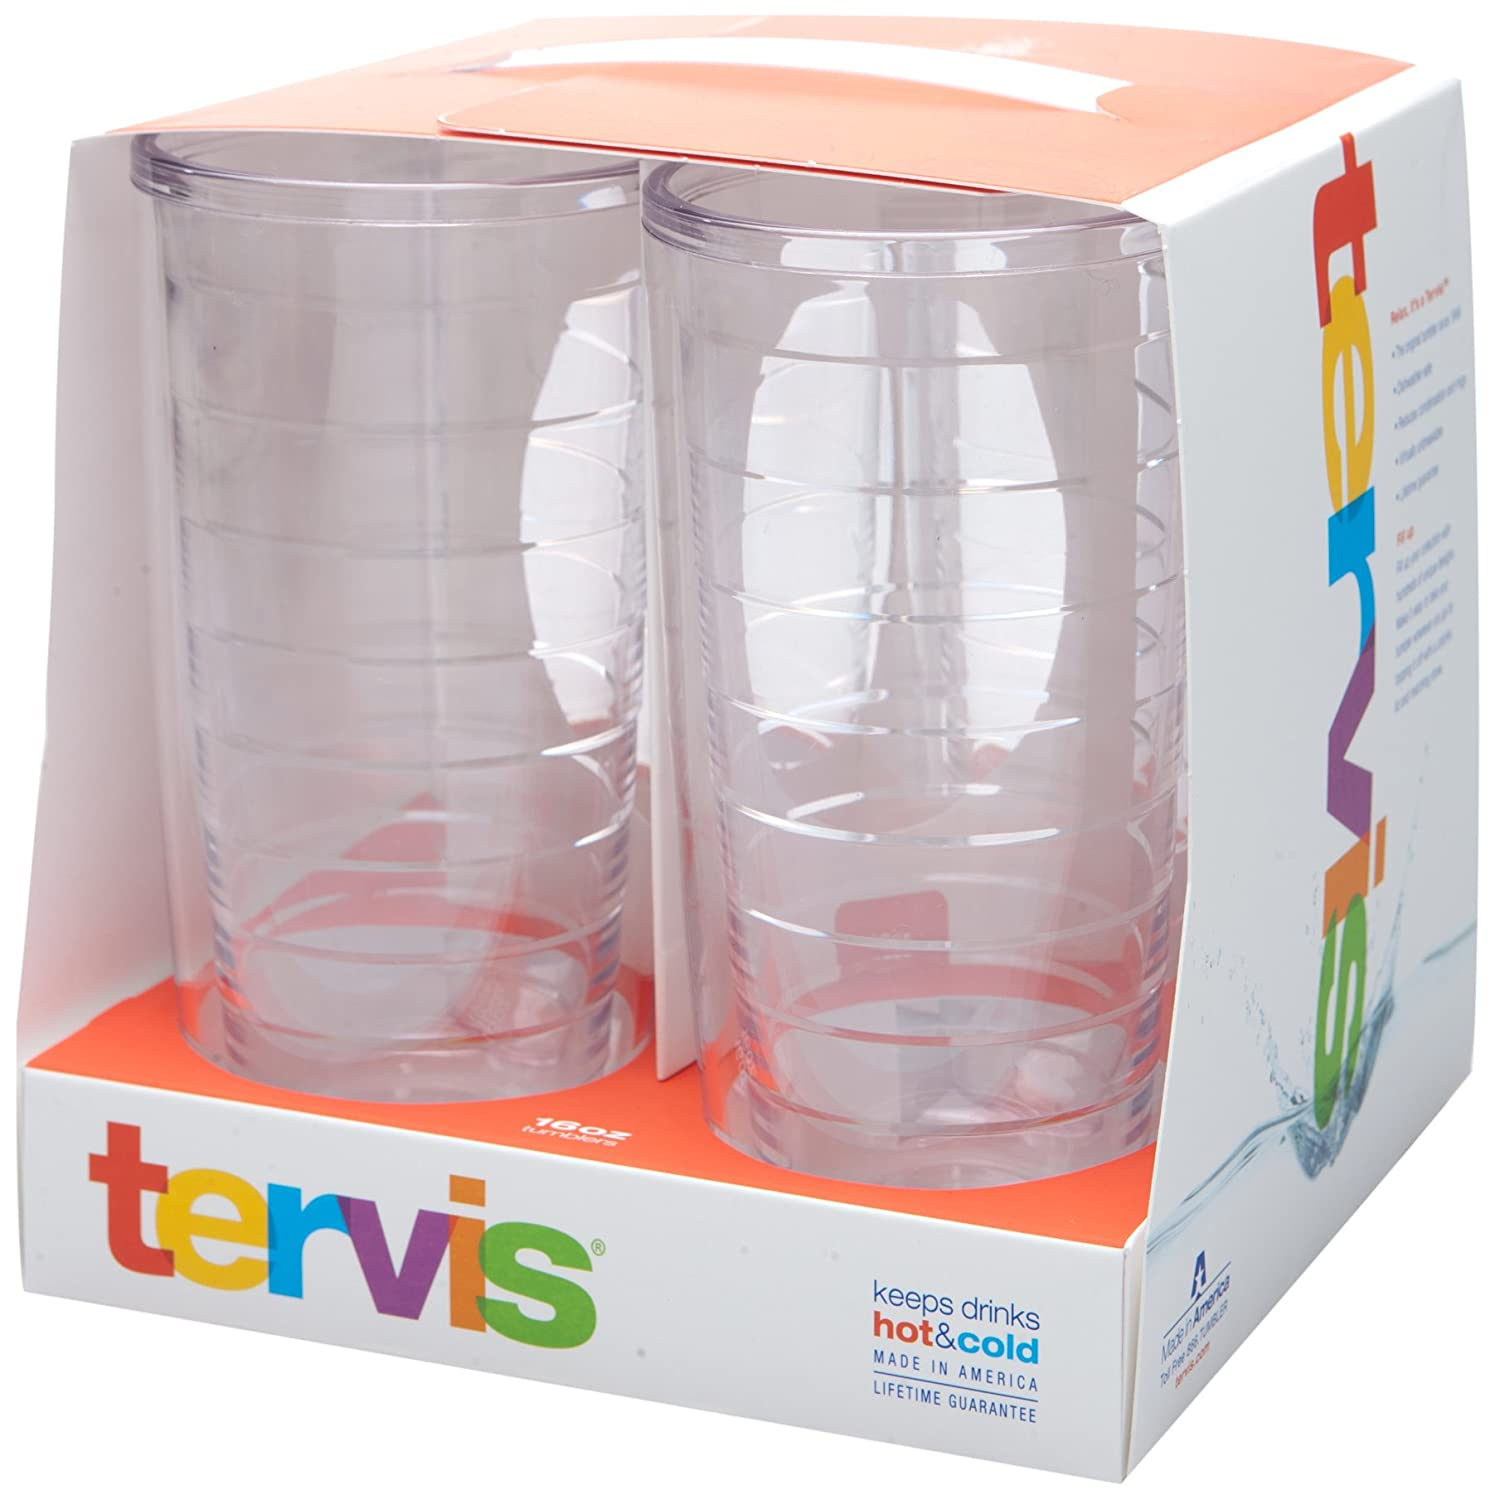 Find the latest Tervis coupons, promo codes, sales and volume discounts for a great deal on American-made tumblers.